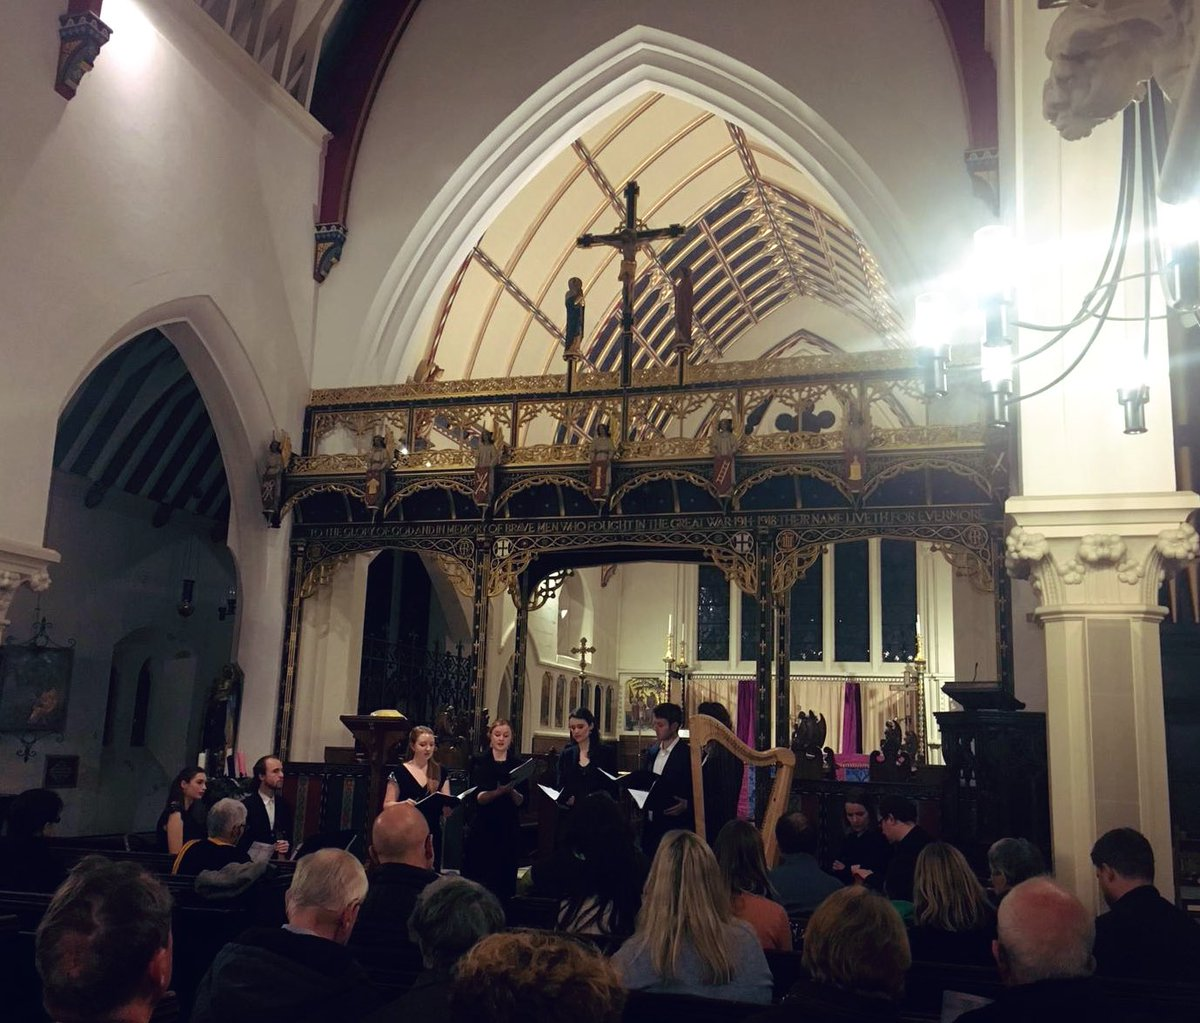 Thank you to everyone who came along to our concert tonight in Blackheath! Looking forward to a repeat performance tomorrow in York @yorkearlymusic #Kapsperger #shepherdsofbethlehem https://t.co/peZy3UjxzI